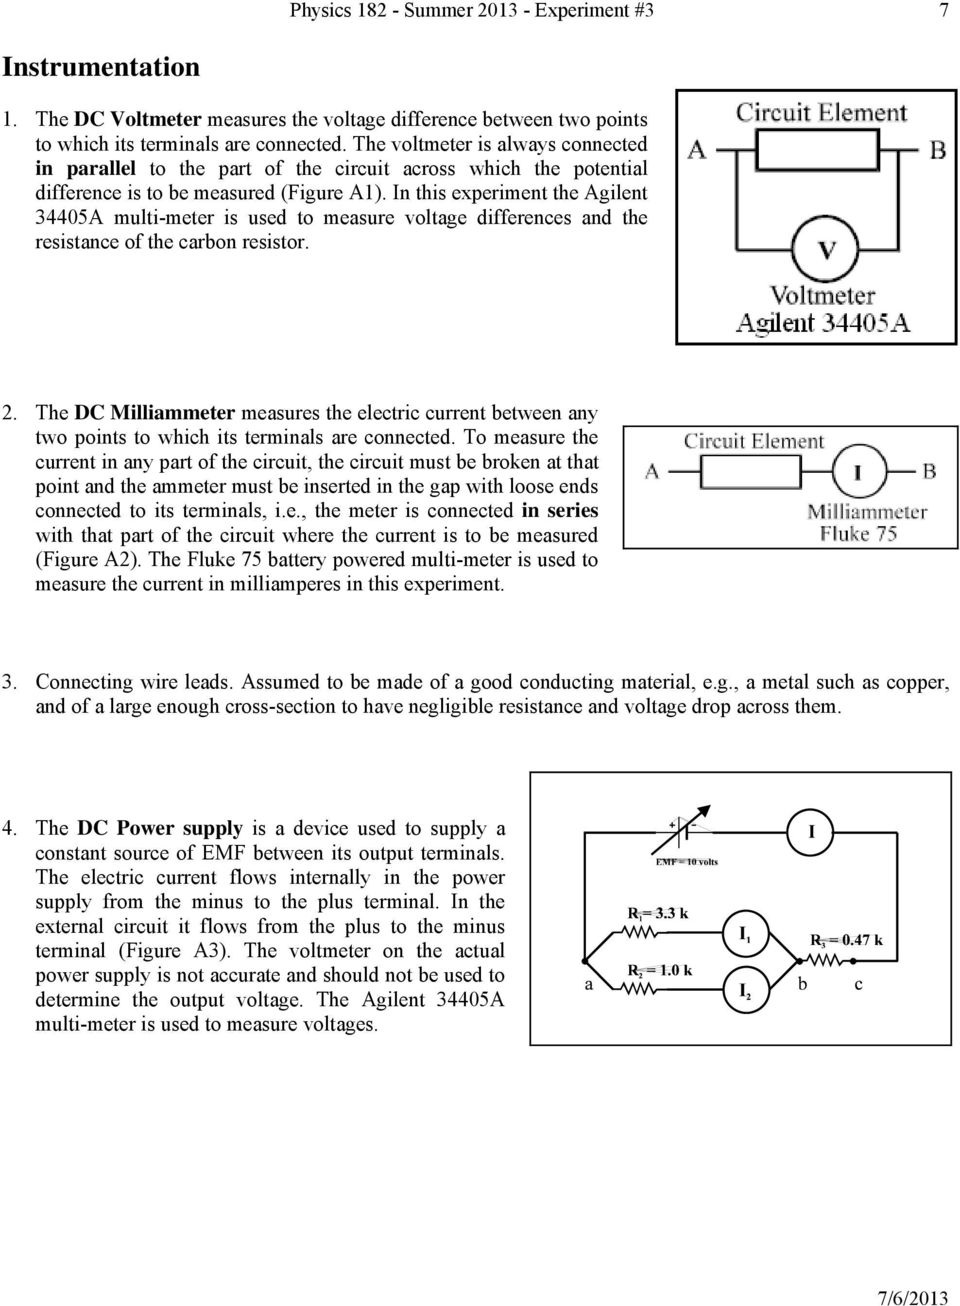 Experiment 3 Ohm S Law Pdf Electric Potential In A Circuit N This The Agilent 34405a Multi Meter Is Used To Measure Age Differences And